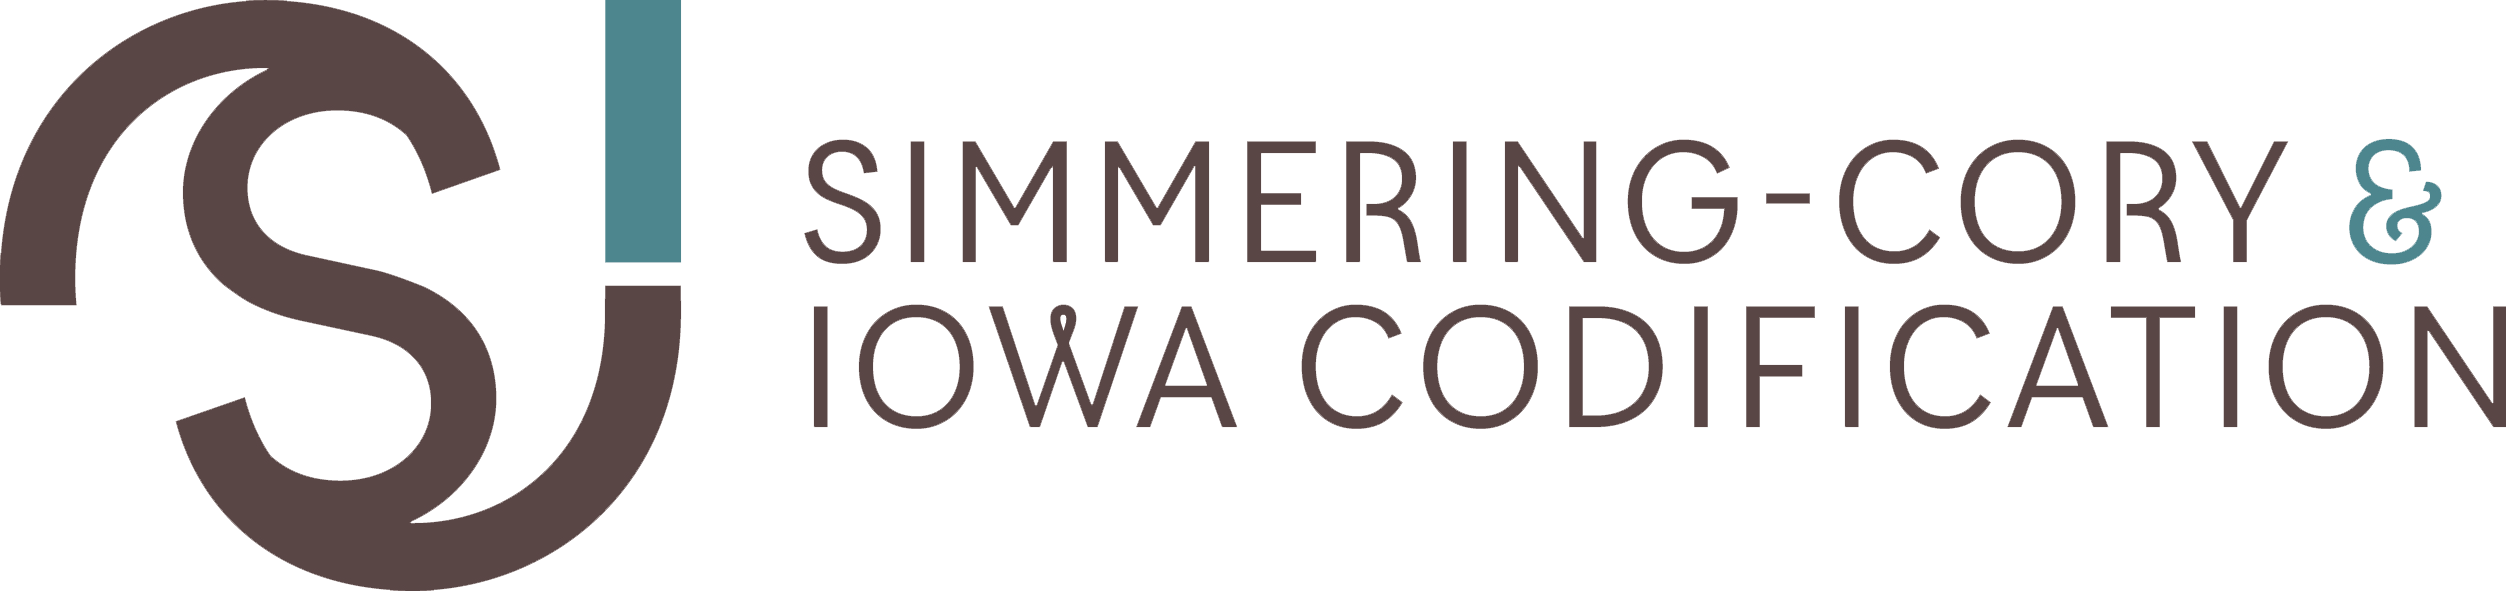 Simmering-Cory & Iowa Codification